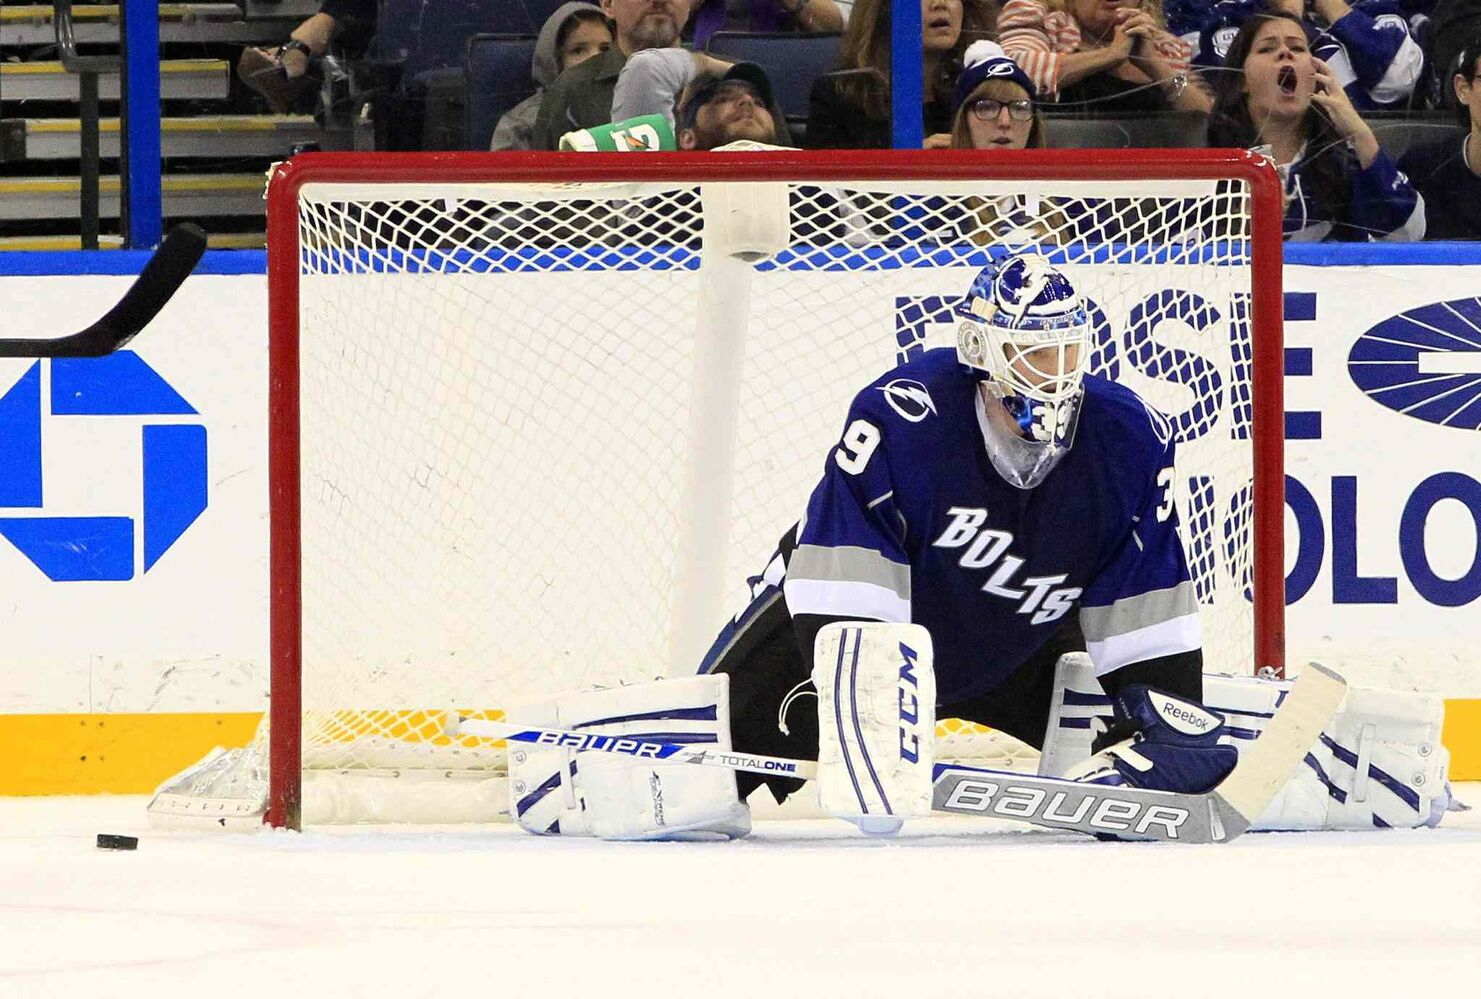 Tampa Bay Lightning goalie Anders Lindback stays down as the puck bounces out of the net after getting beaten by Mark Scheifele in overtime.